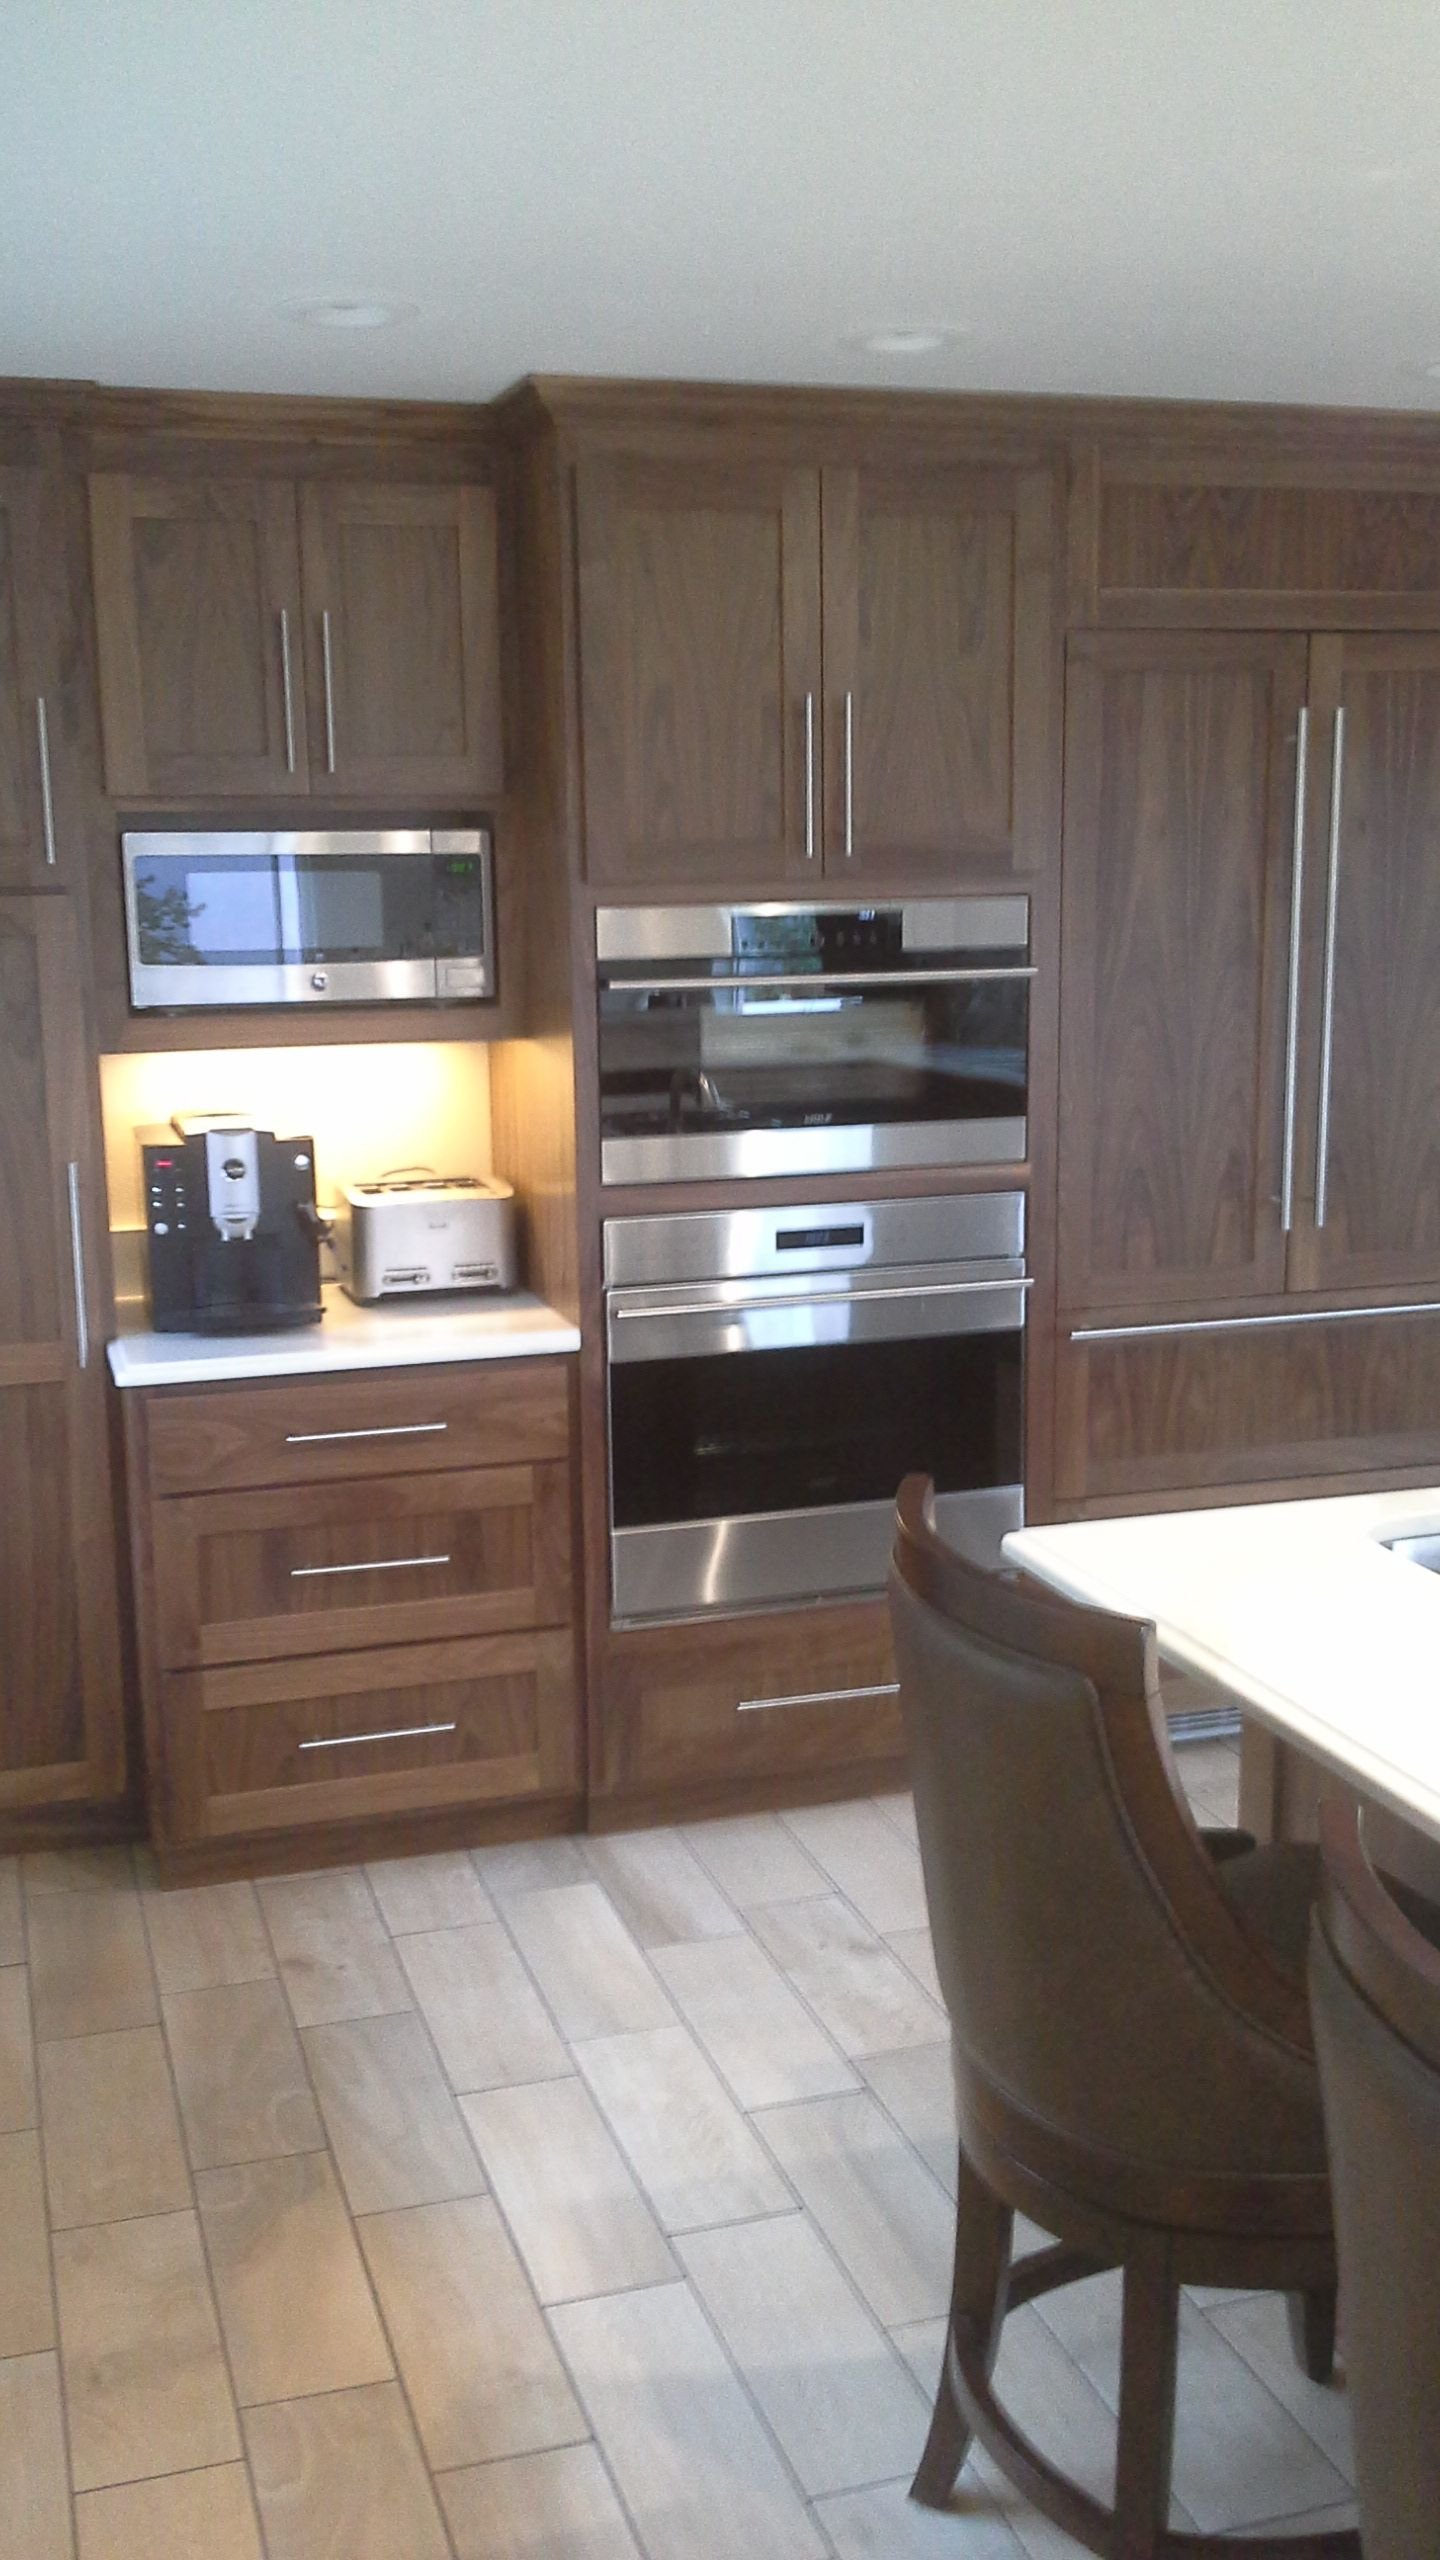 See Our Work Cornerstone Cabinetry Fine Craftsmanship Attention To Detail Cabinetry Kitchen Cabinets American Black Walnut